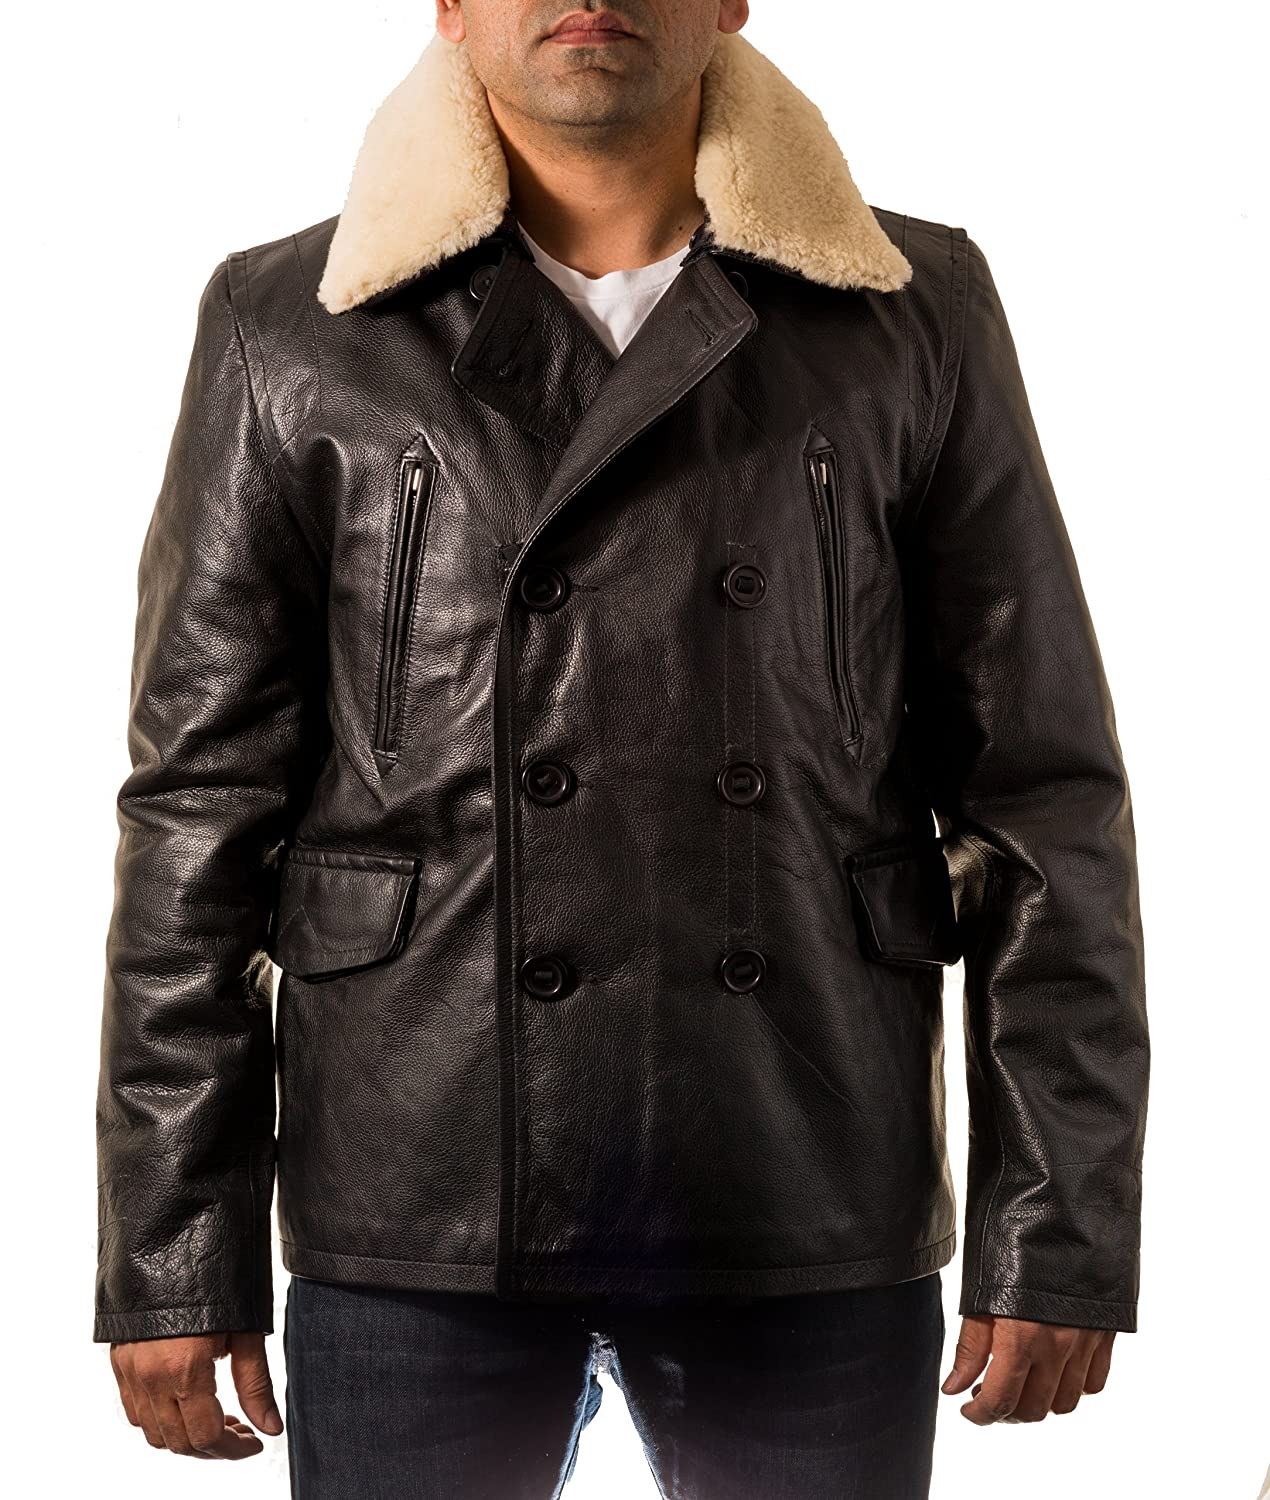 Mens Black WW2 Military Airforce Style Cowhide Leather Jacket & Sheepskin Collar